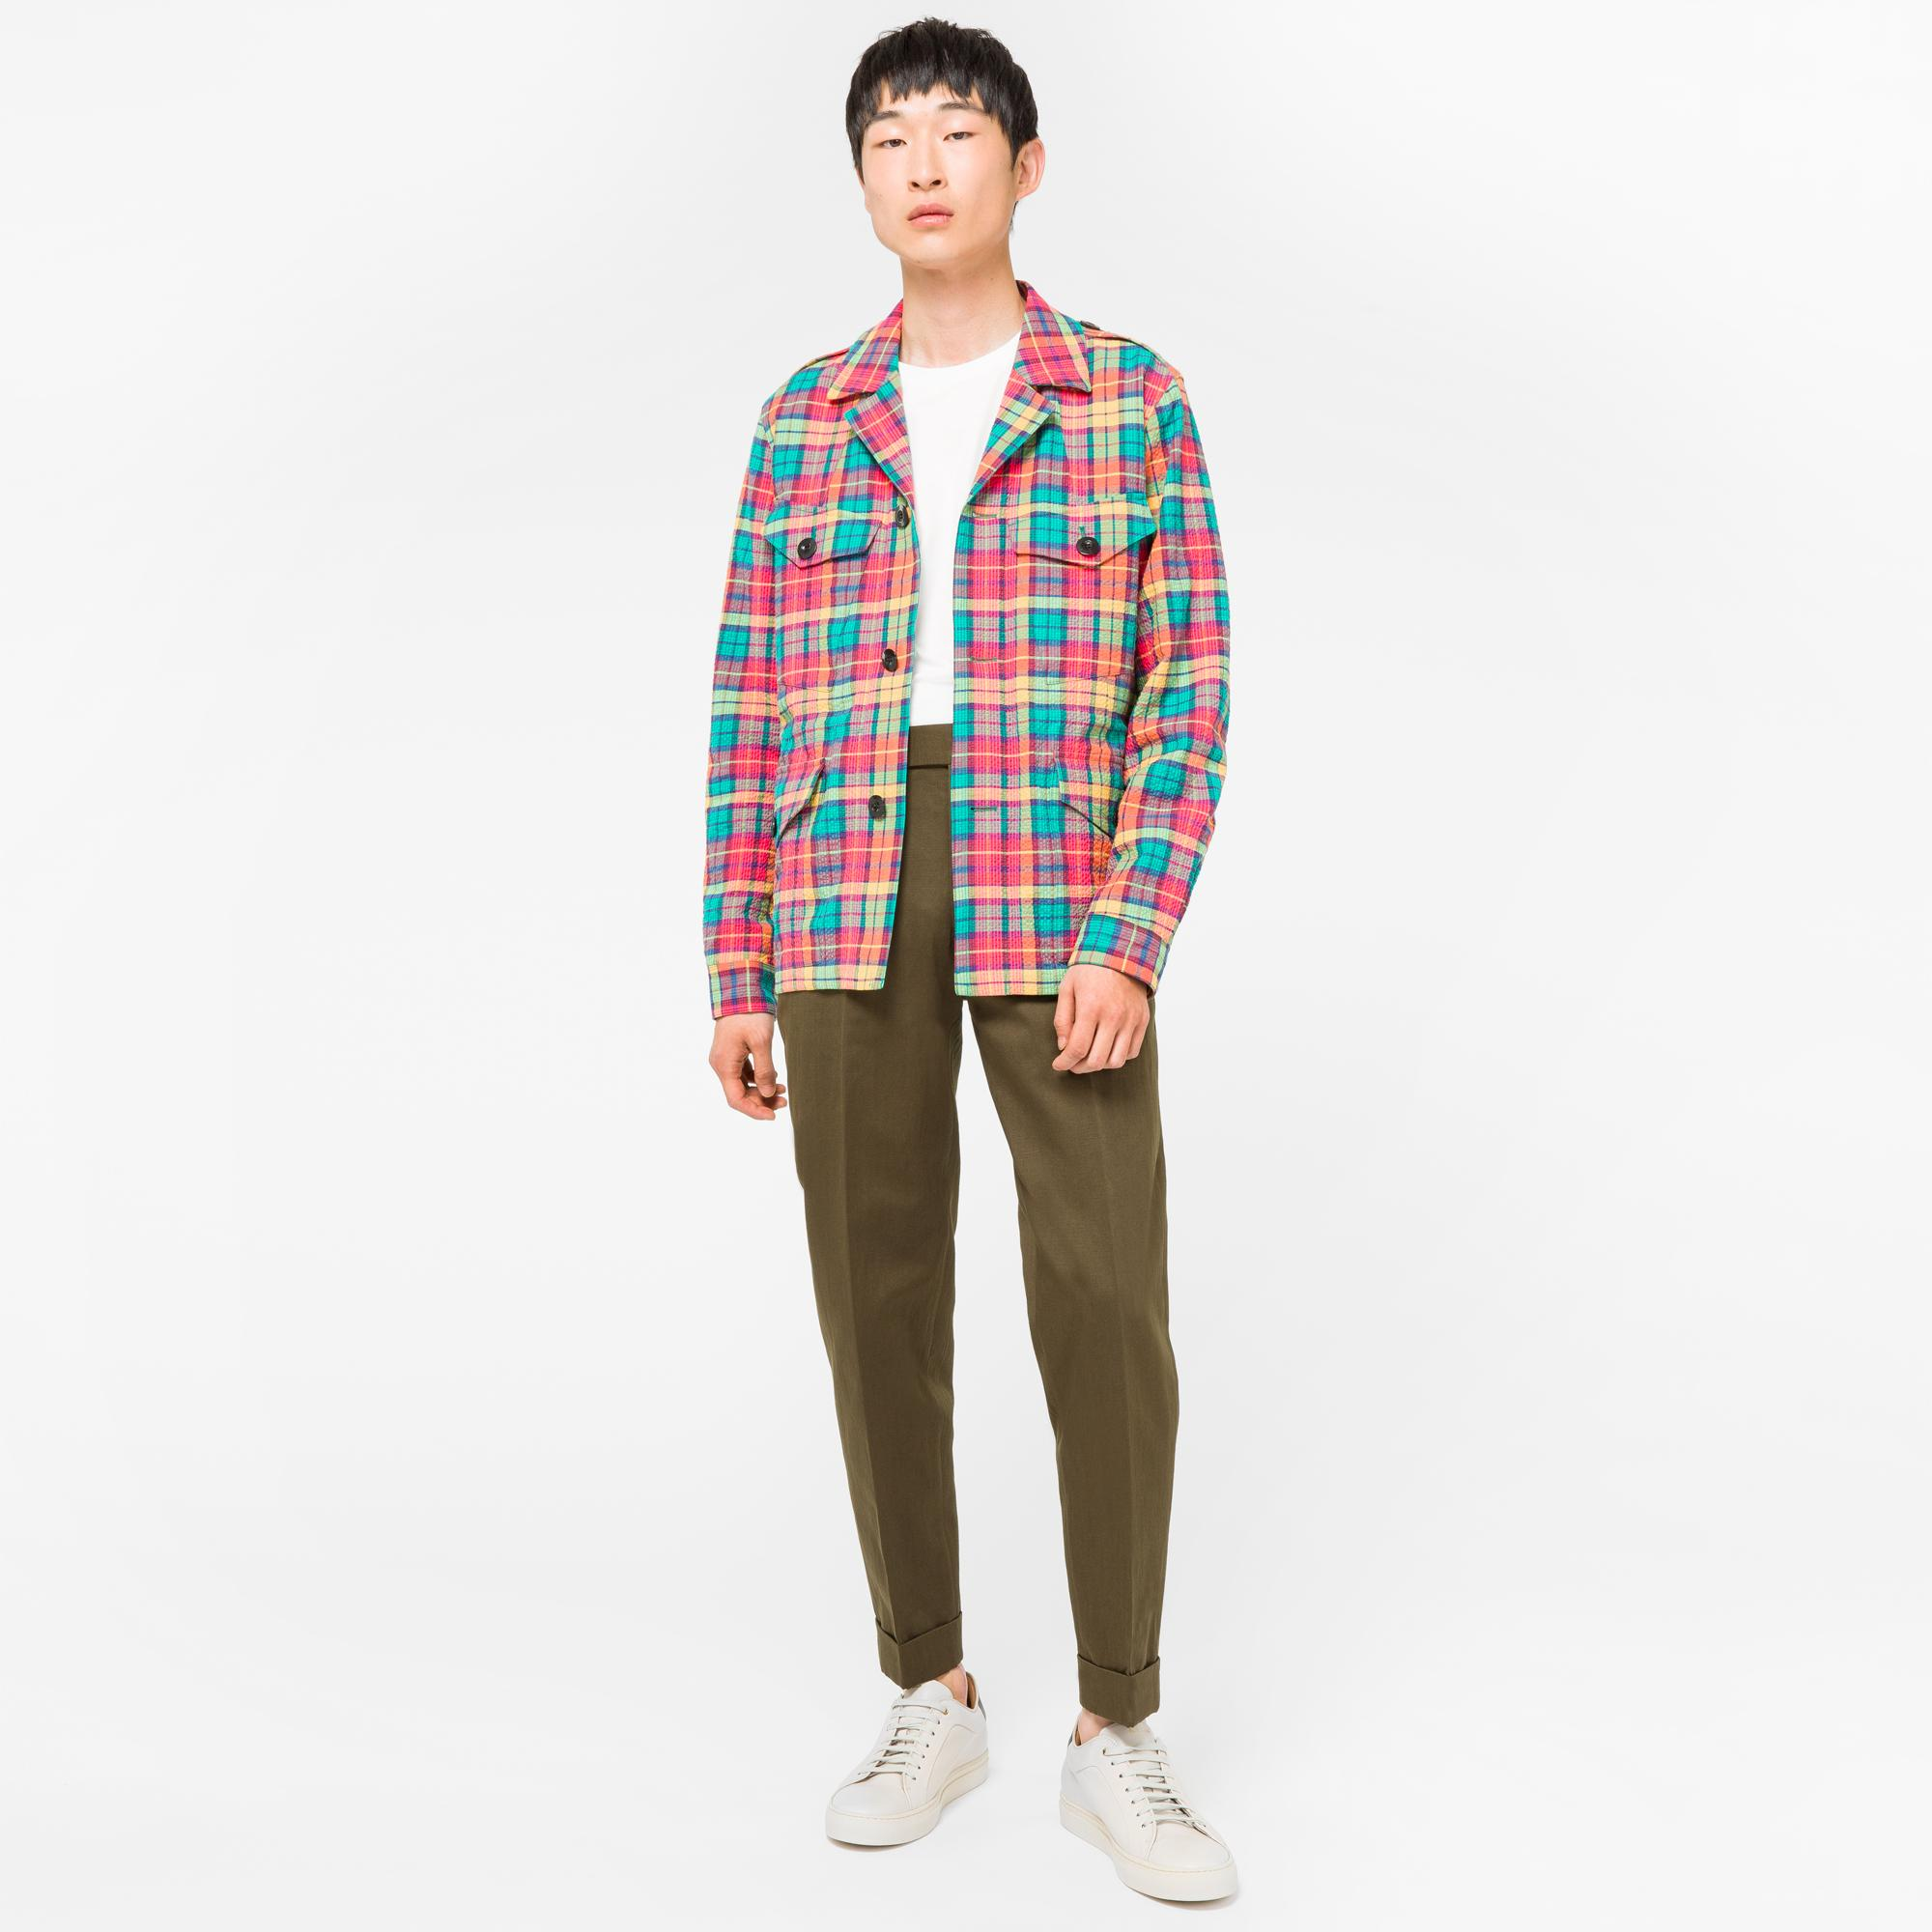 Paul Smith Cotton Men's Four Pocket Madras Check Field Jacket for Men